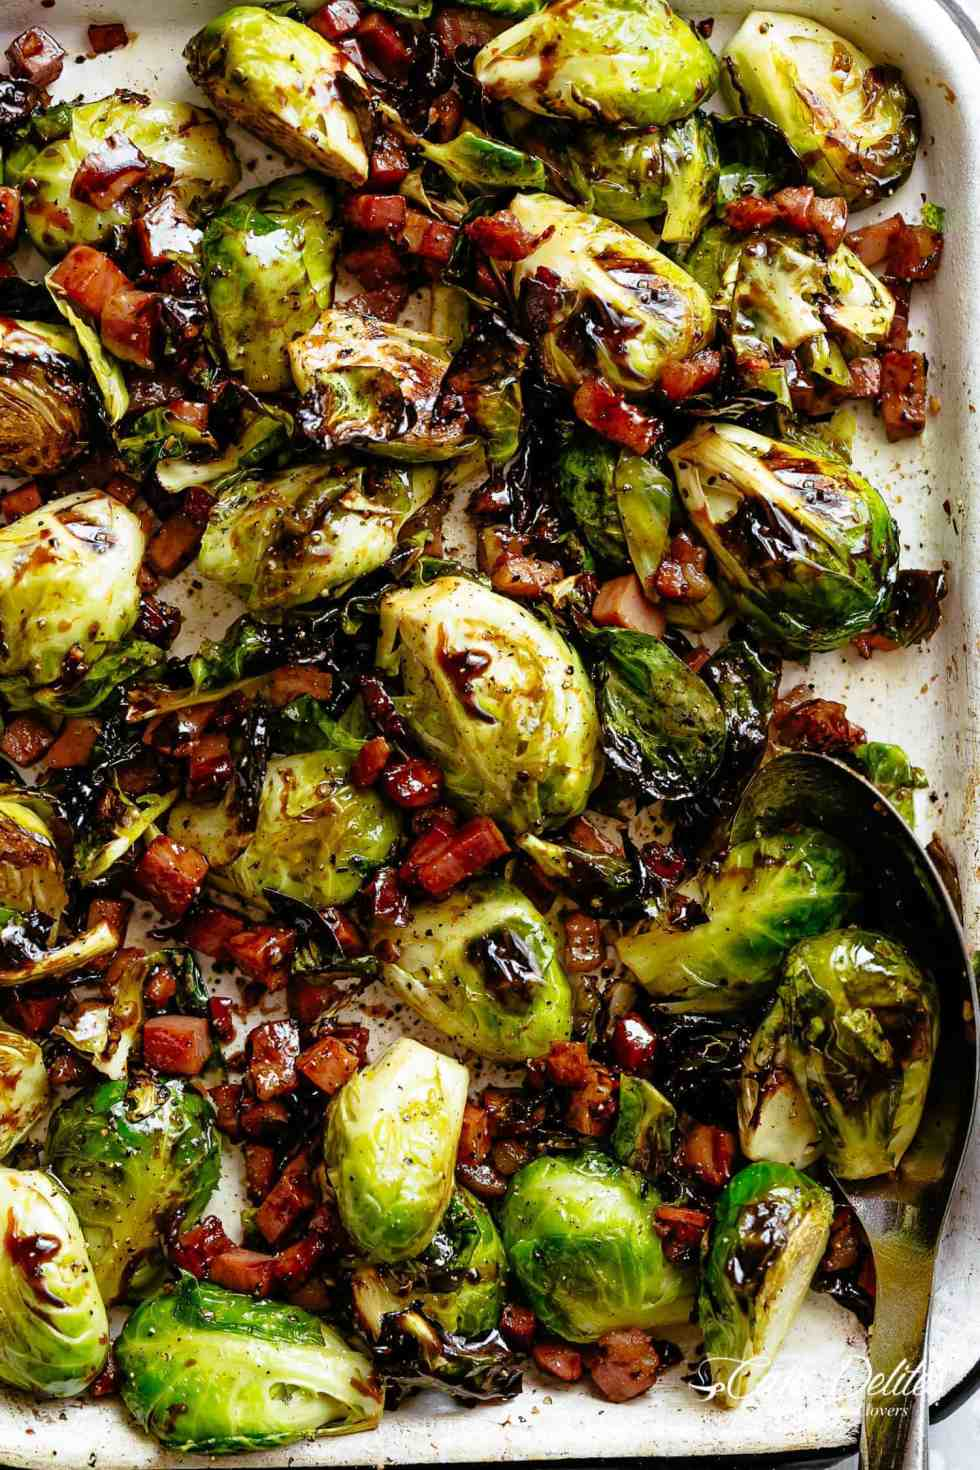 Garlic Roasted Brussels Sprouts with crispy bacon or pancetta, finished off with a balsamic reduction!